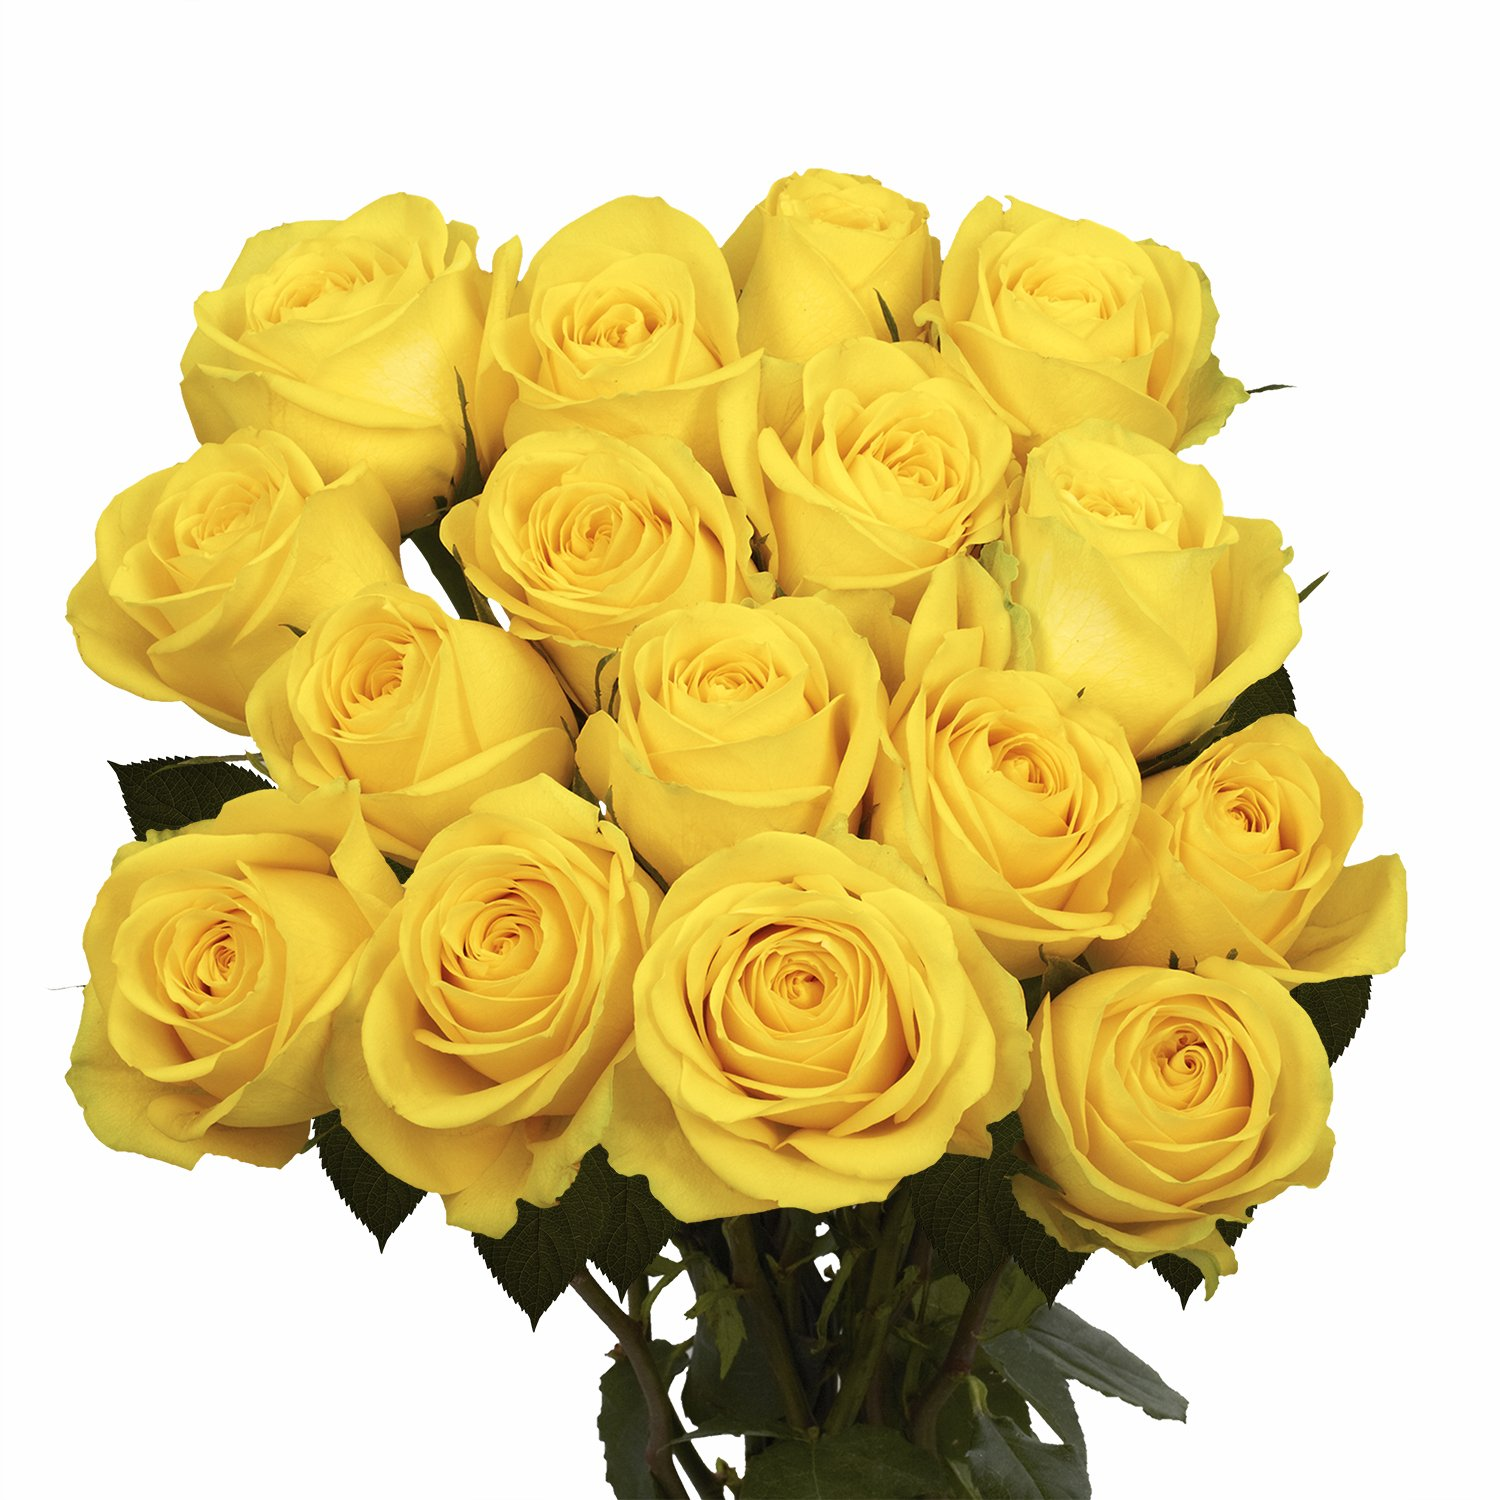 GlobalRose 100 Yellow Roses- Flower Delivery- Fresh Cut Long Stem by GlobalRose